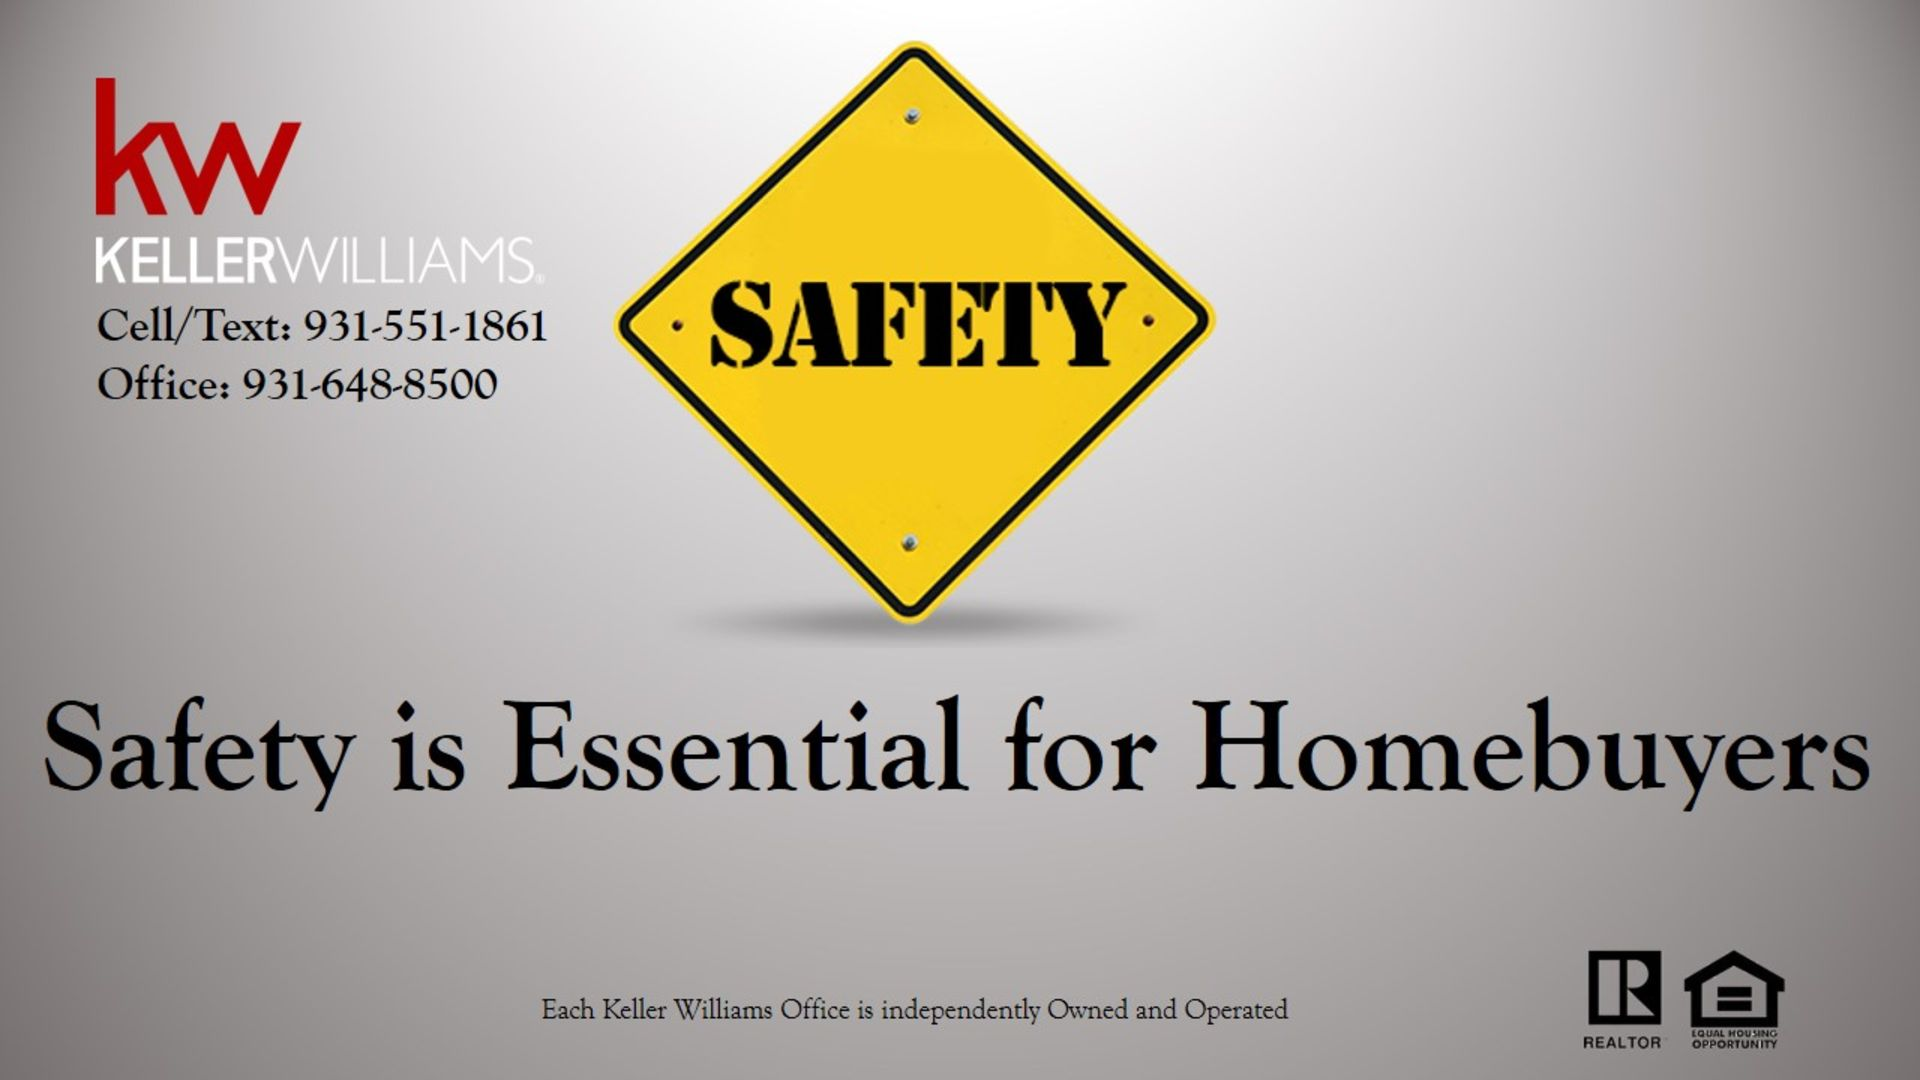 Safety is Essential for Homebuyers